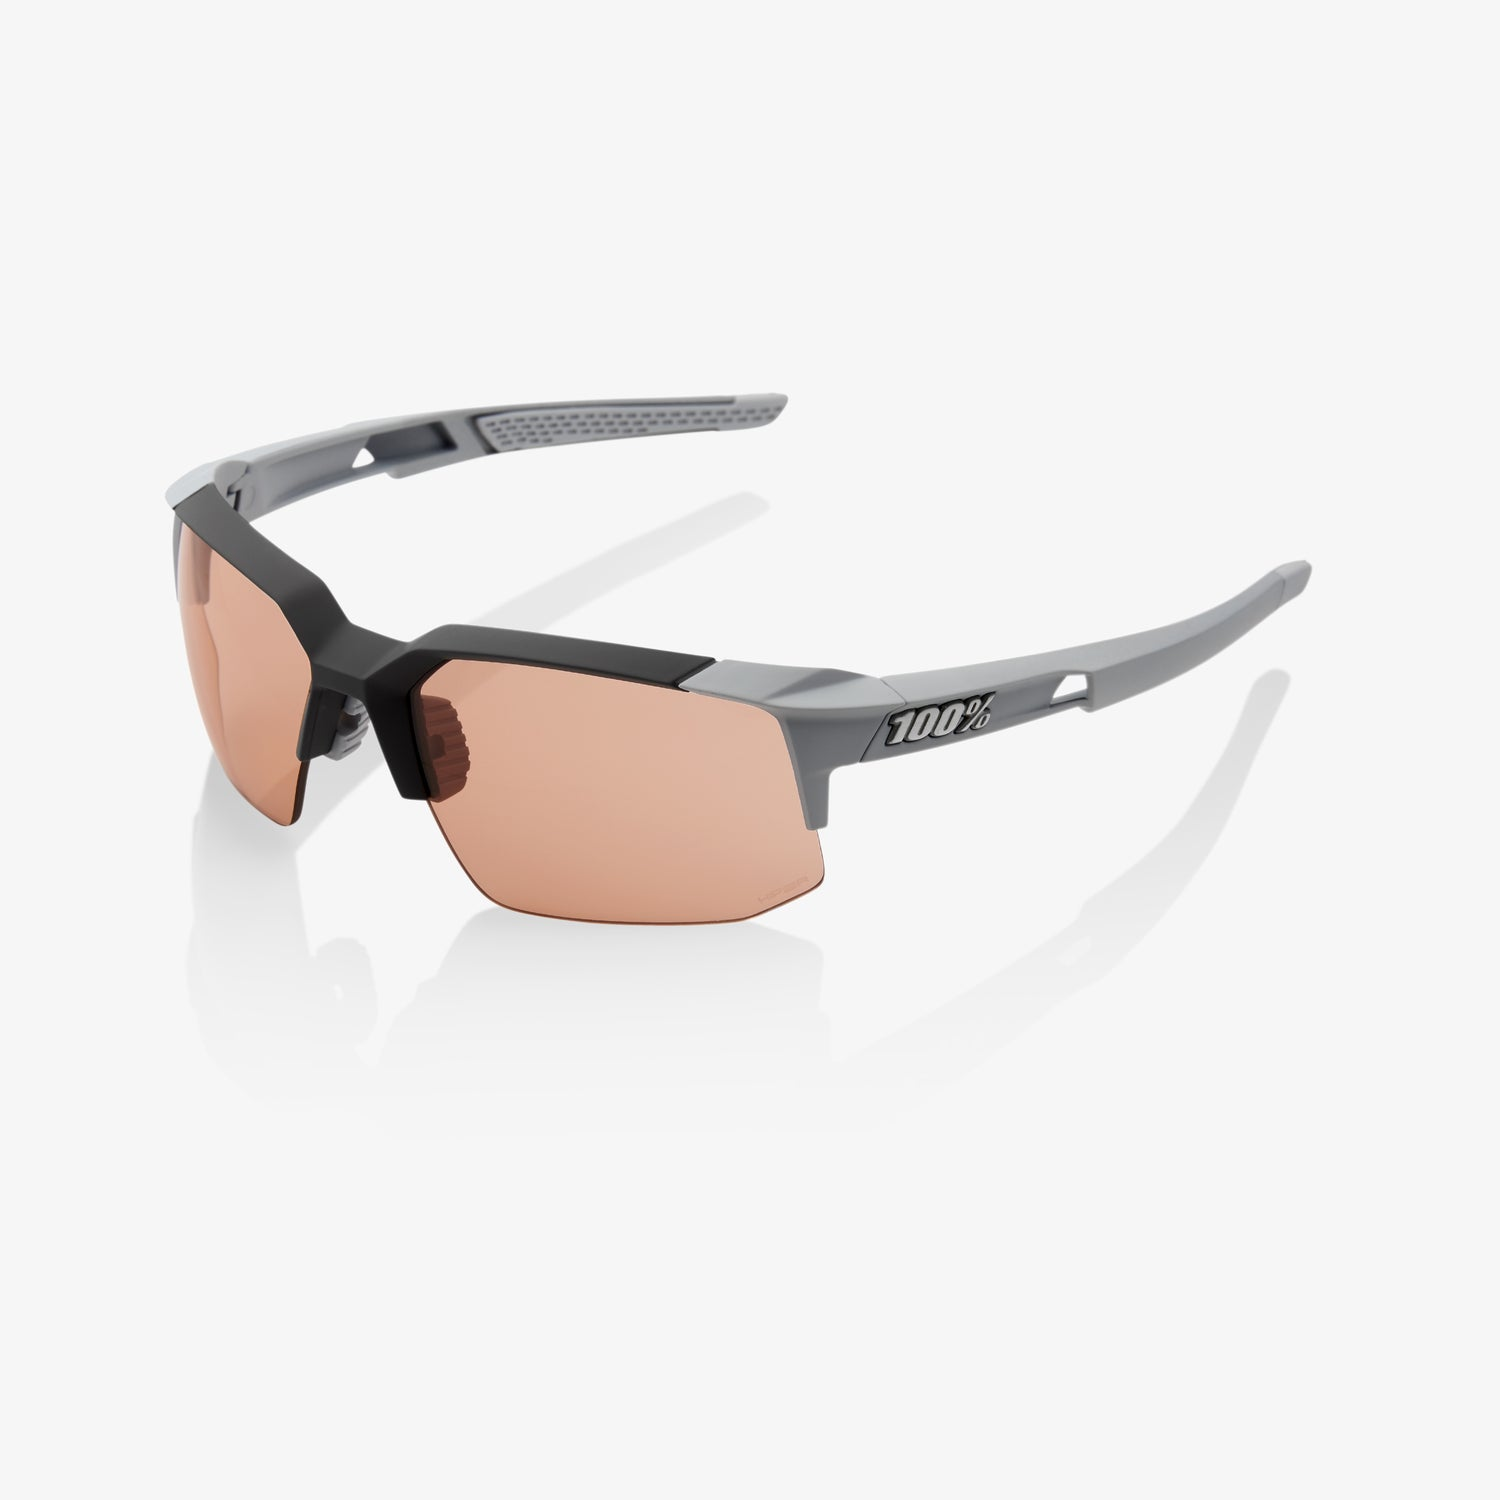 SPEEDCOUPE - Soft Tact Stone Grey - HiPER Coral Lens